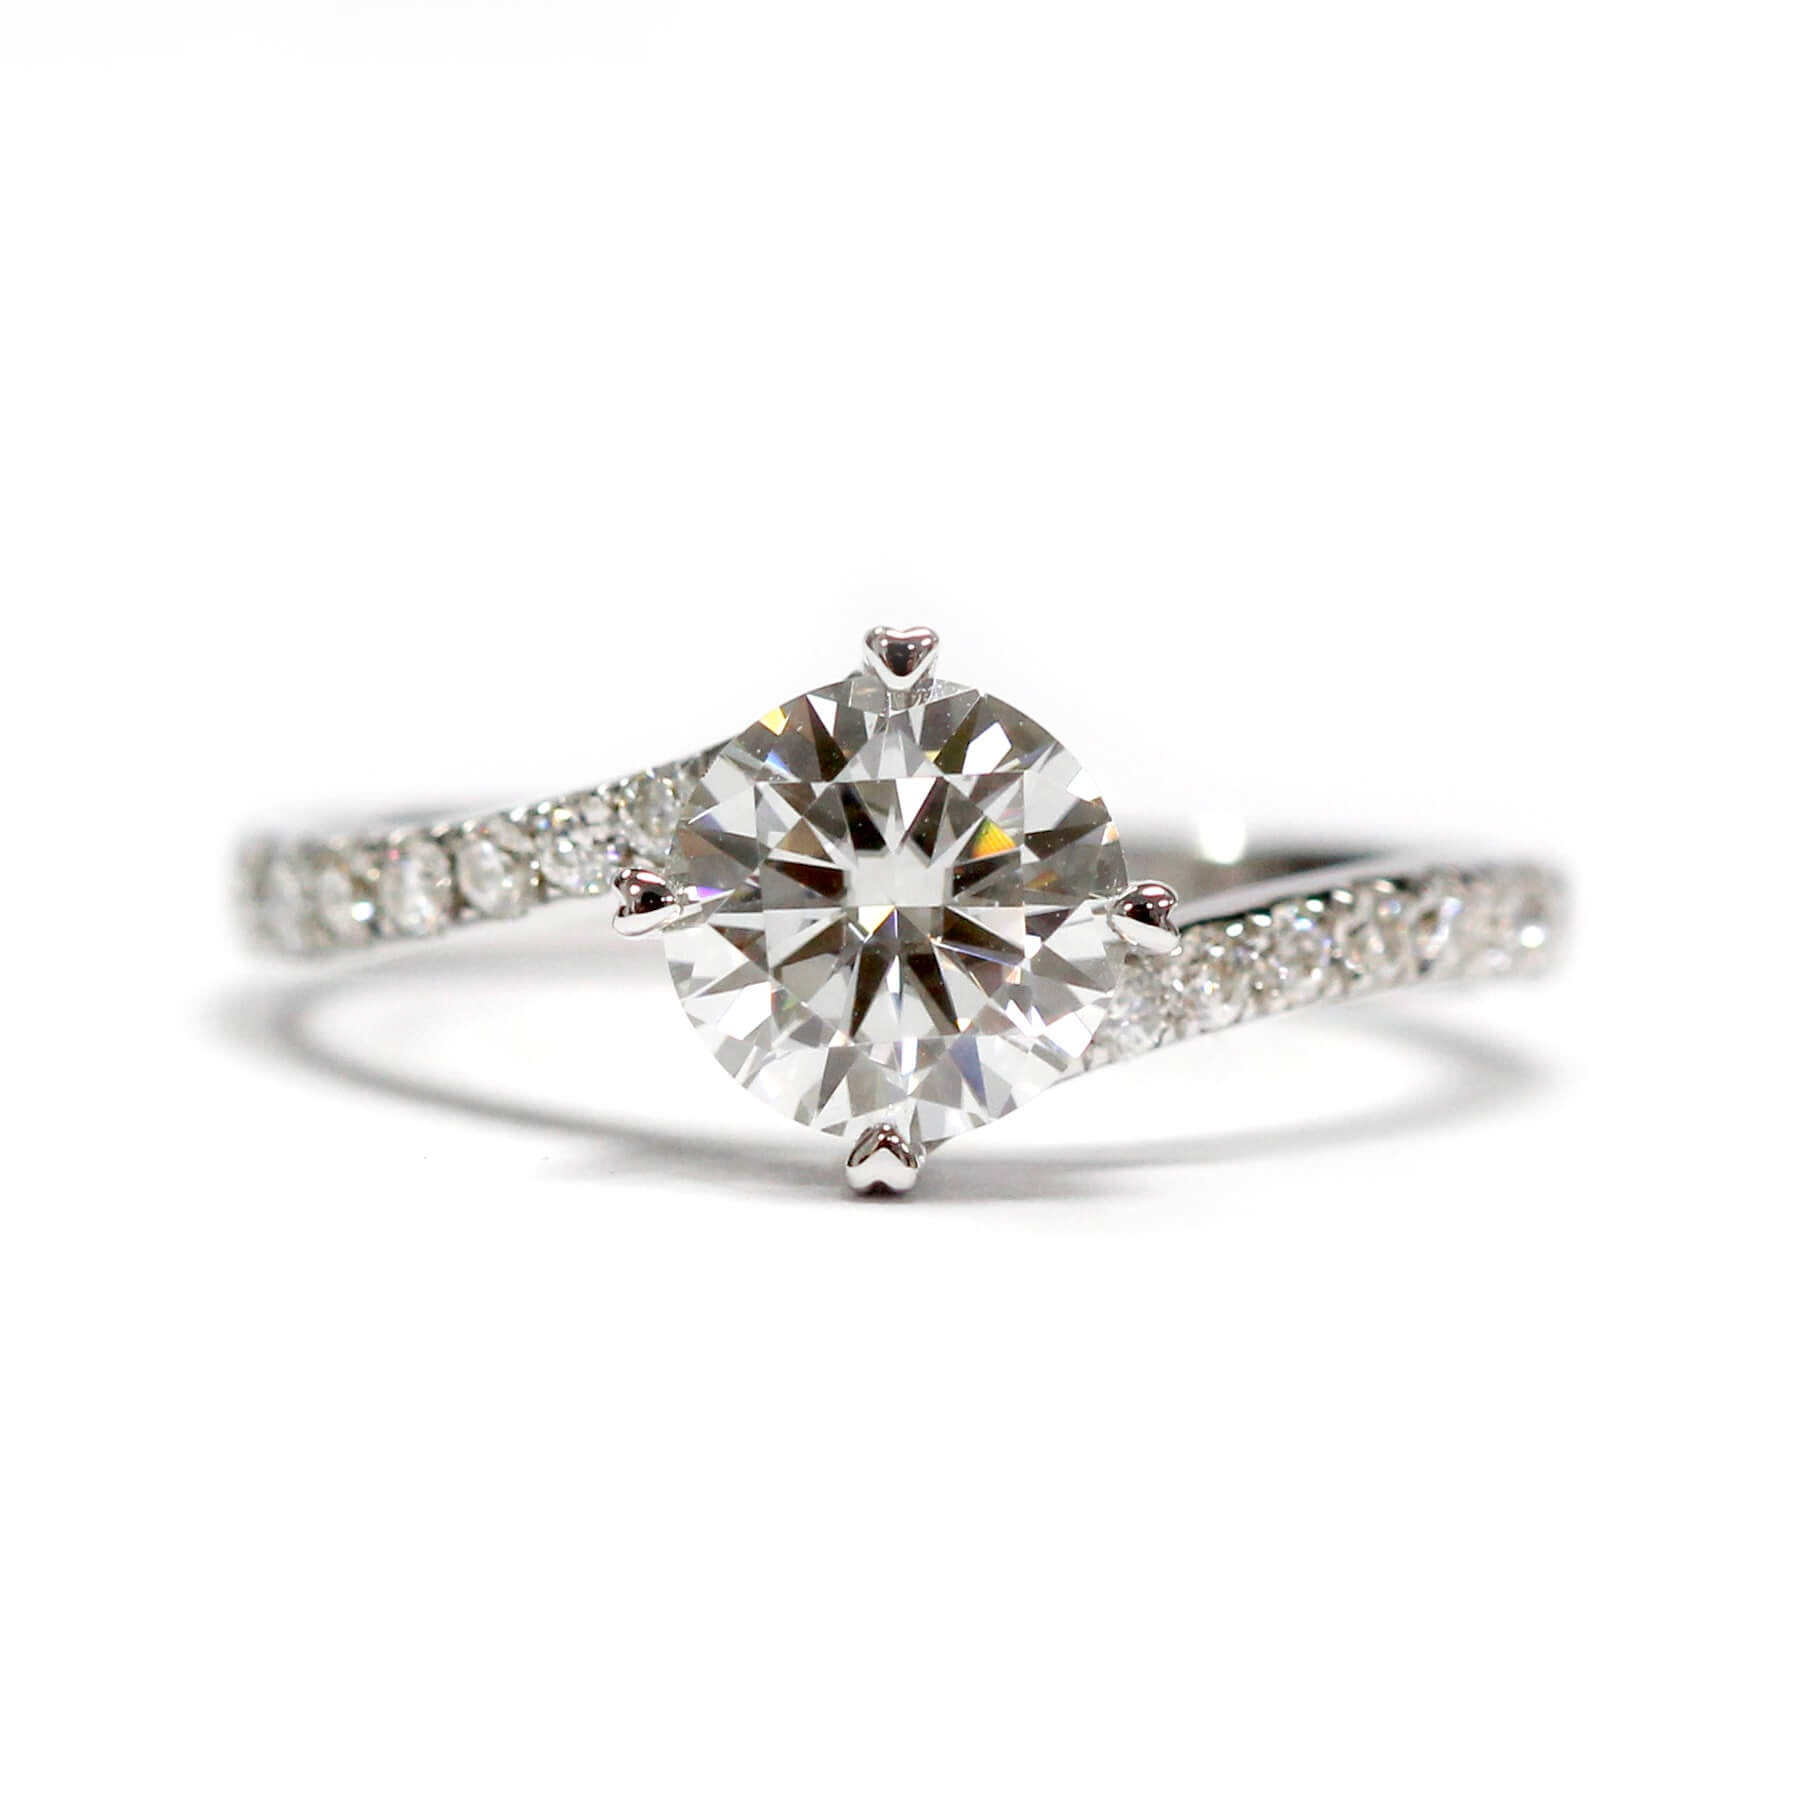 Ready-Made | Kerry 1.5 Carat Moissanite Bypass Twist Pave Ring | Sizes HK 8-9 - LeCaine Gems